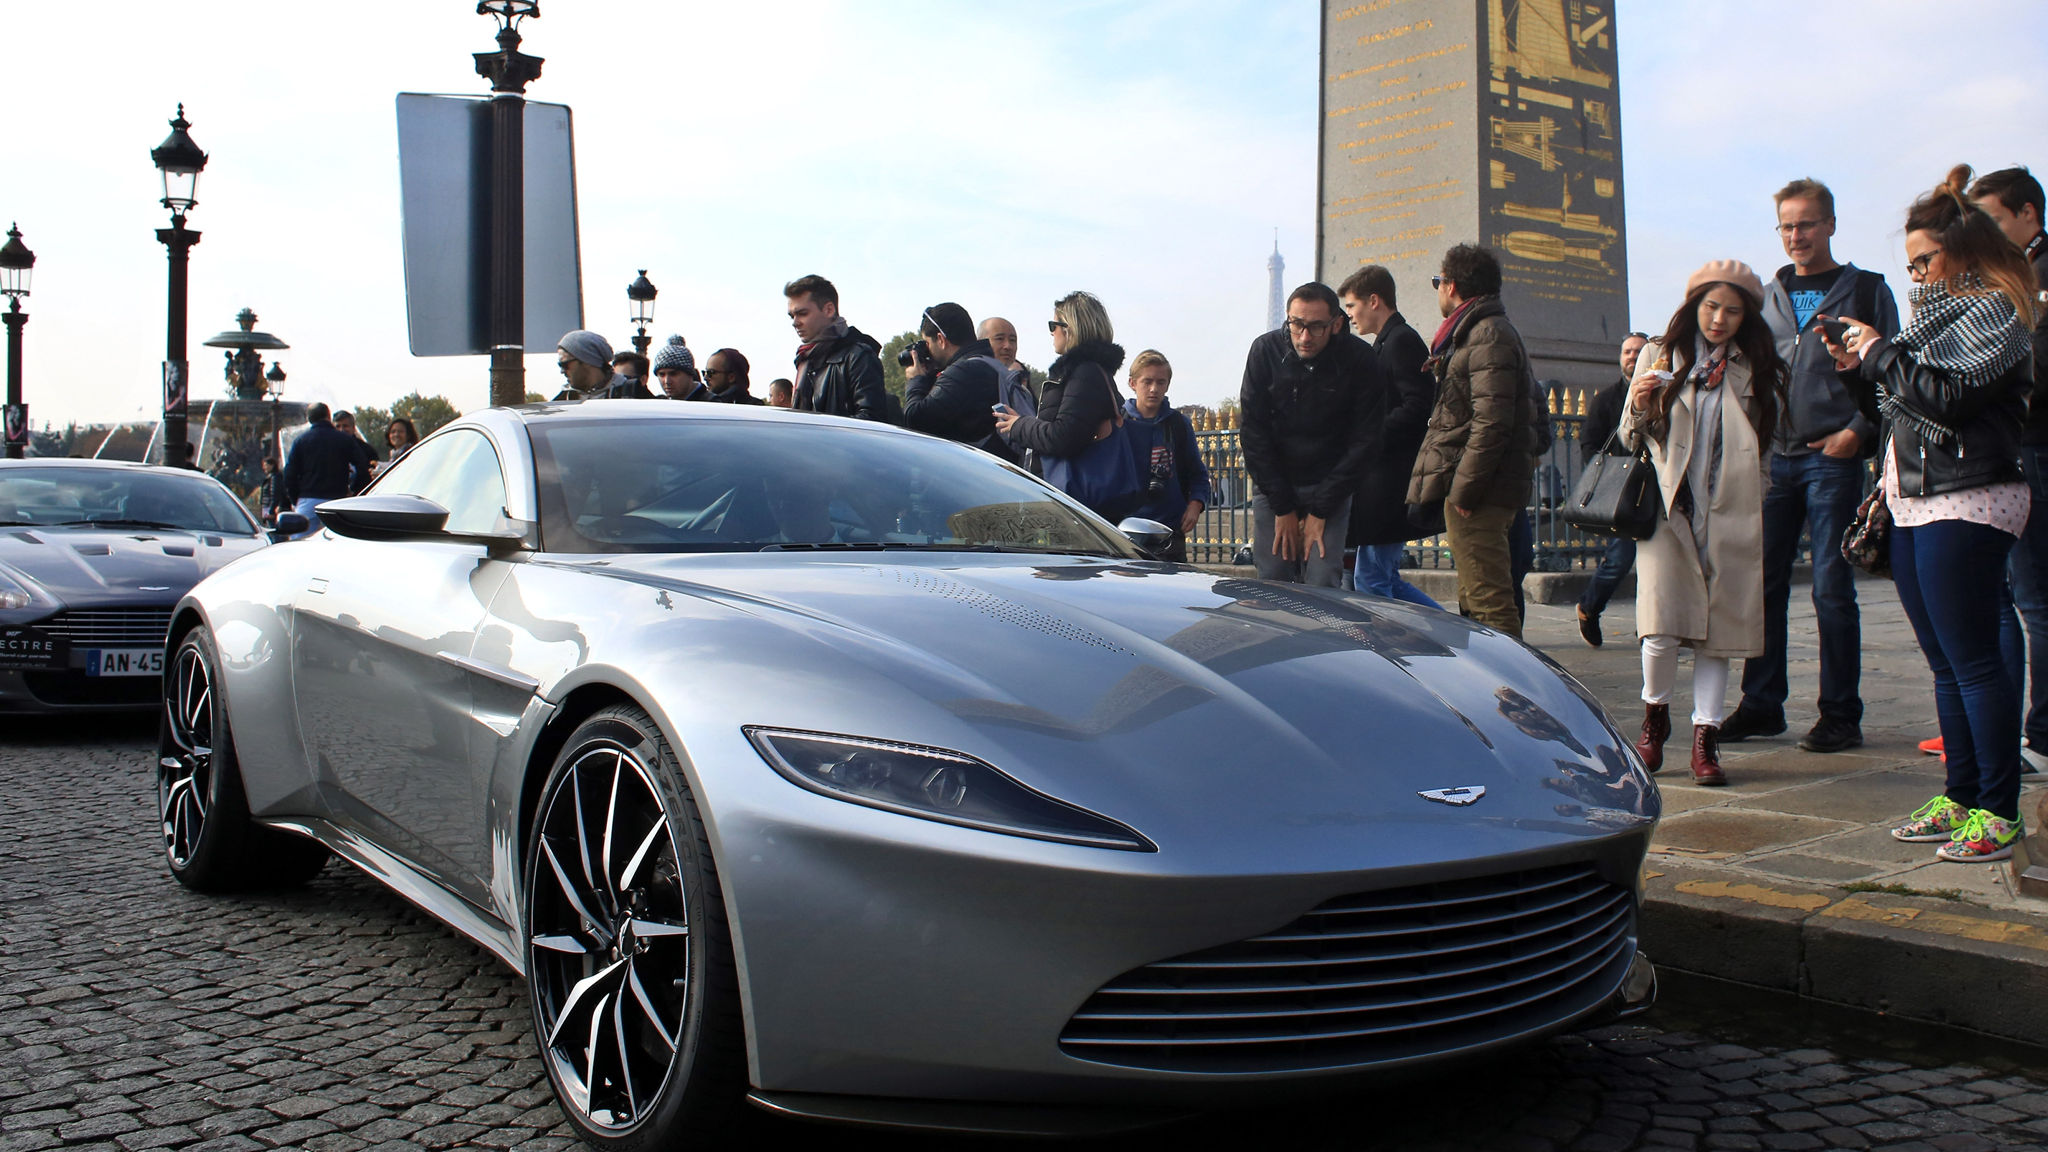 Aston Martin Is A Gem That Needs Love Says Billionaire Rescuer Financial Times